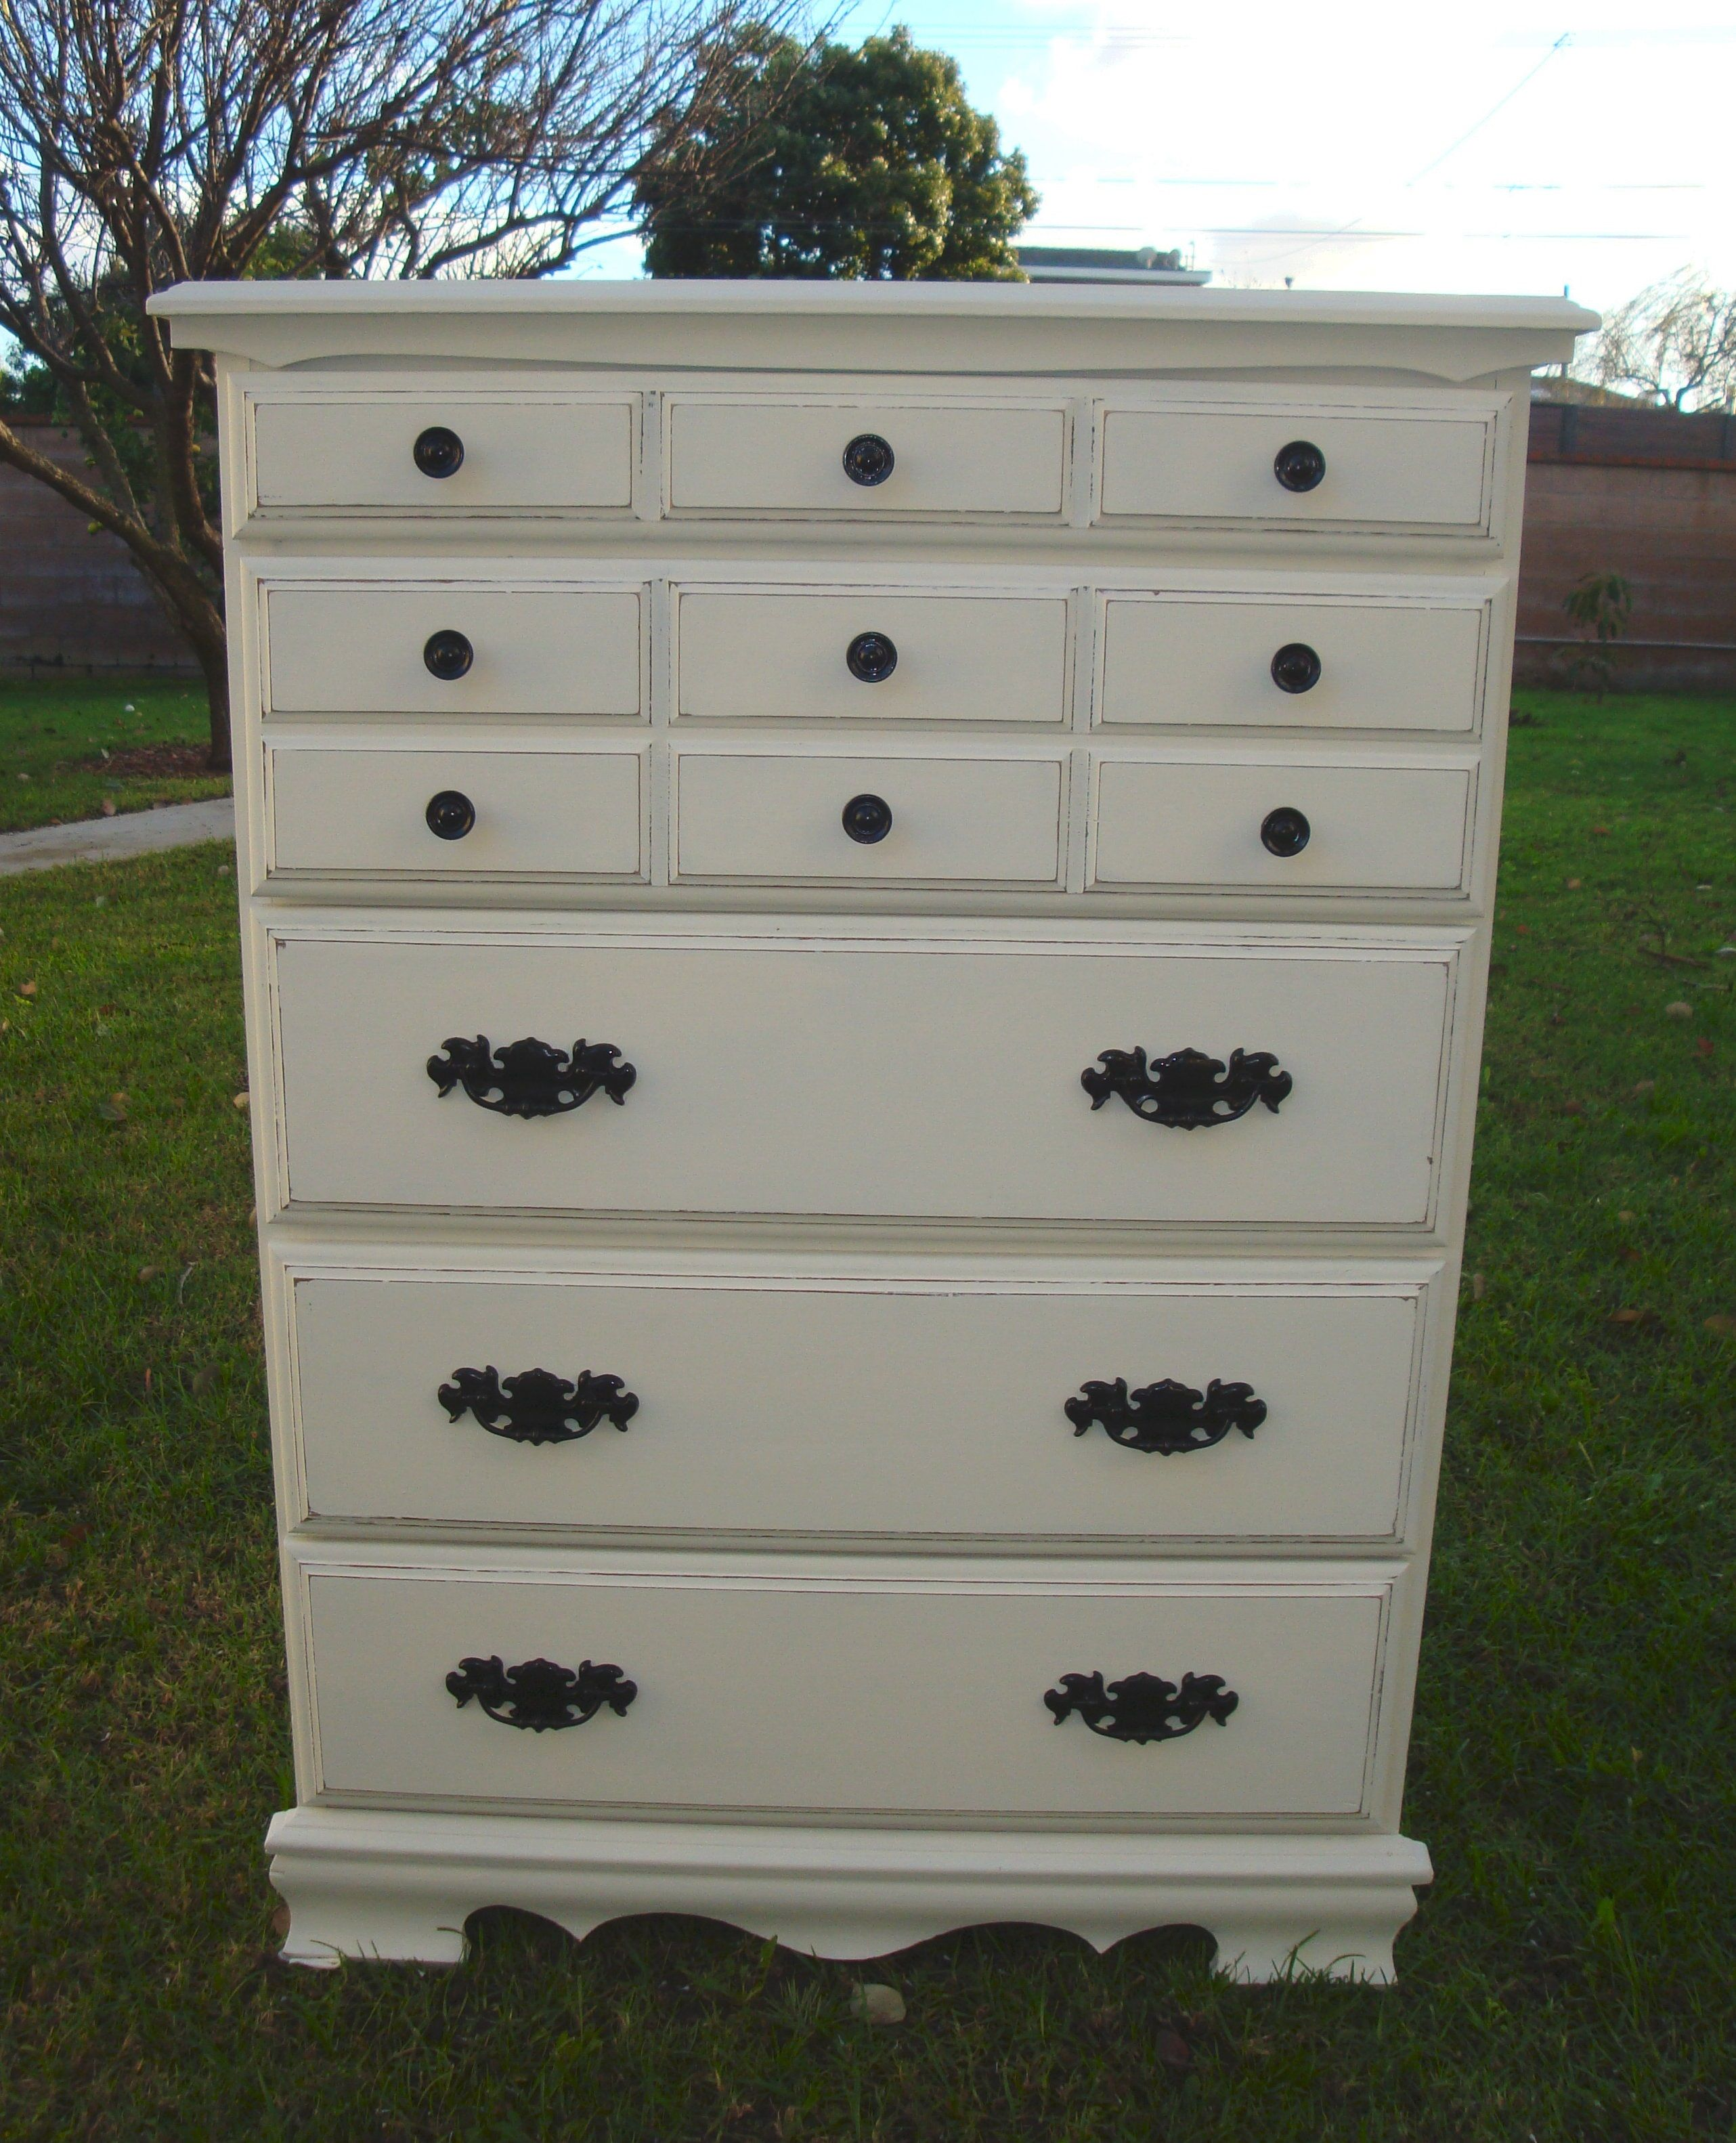 listed following temple manufacturer lso the drawer is dresser also under sku numbers white webster piper sometimes chest wht